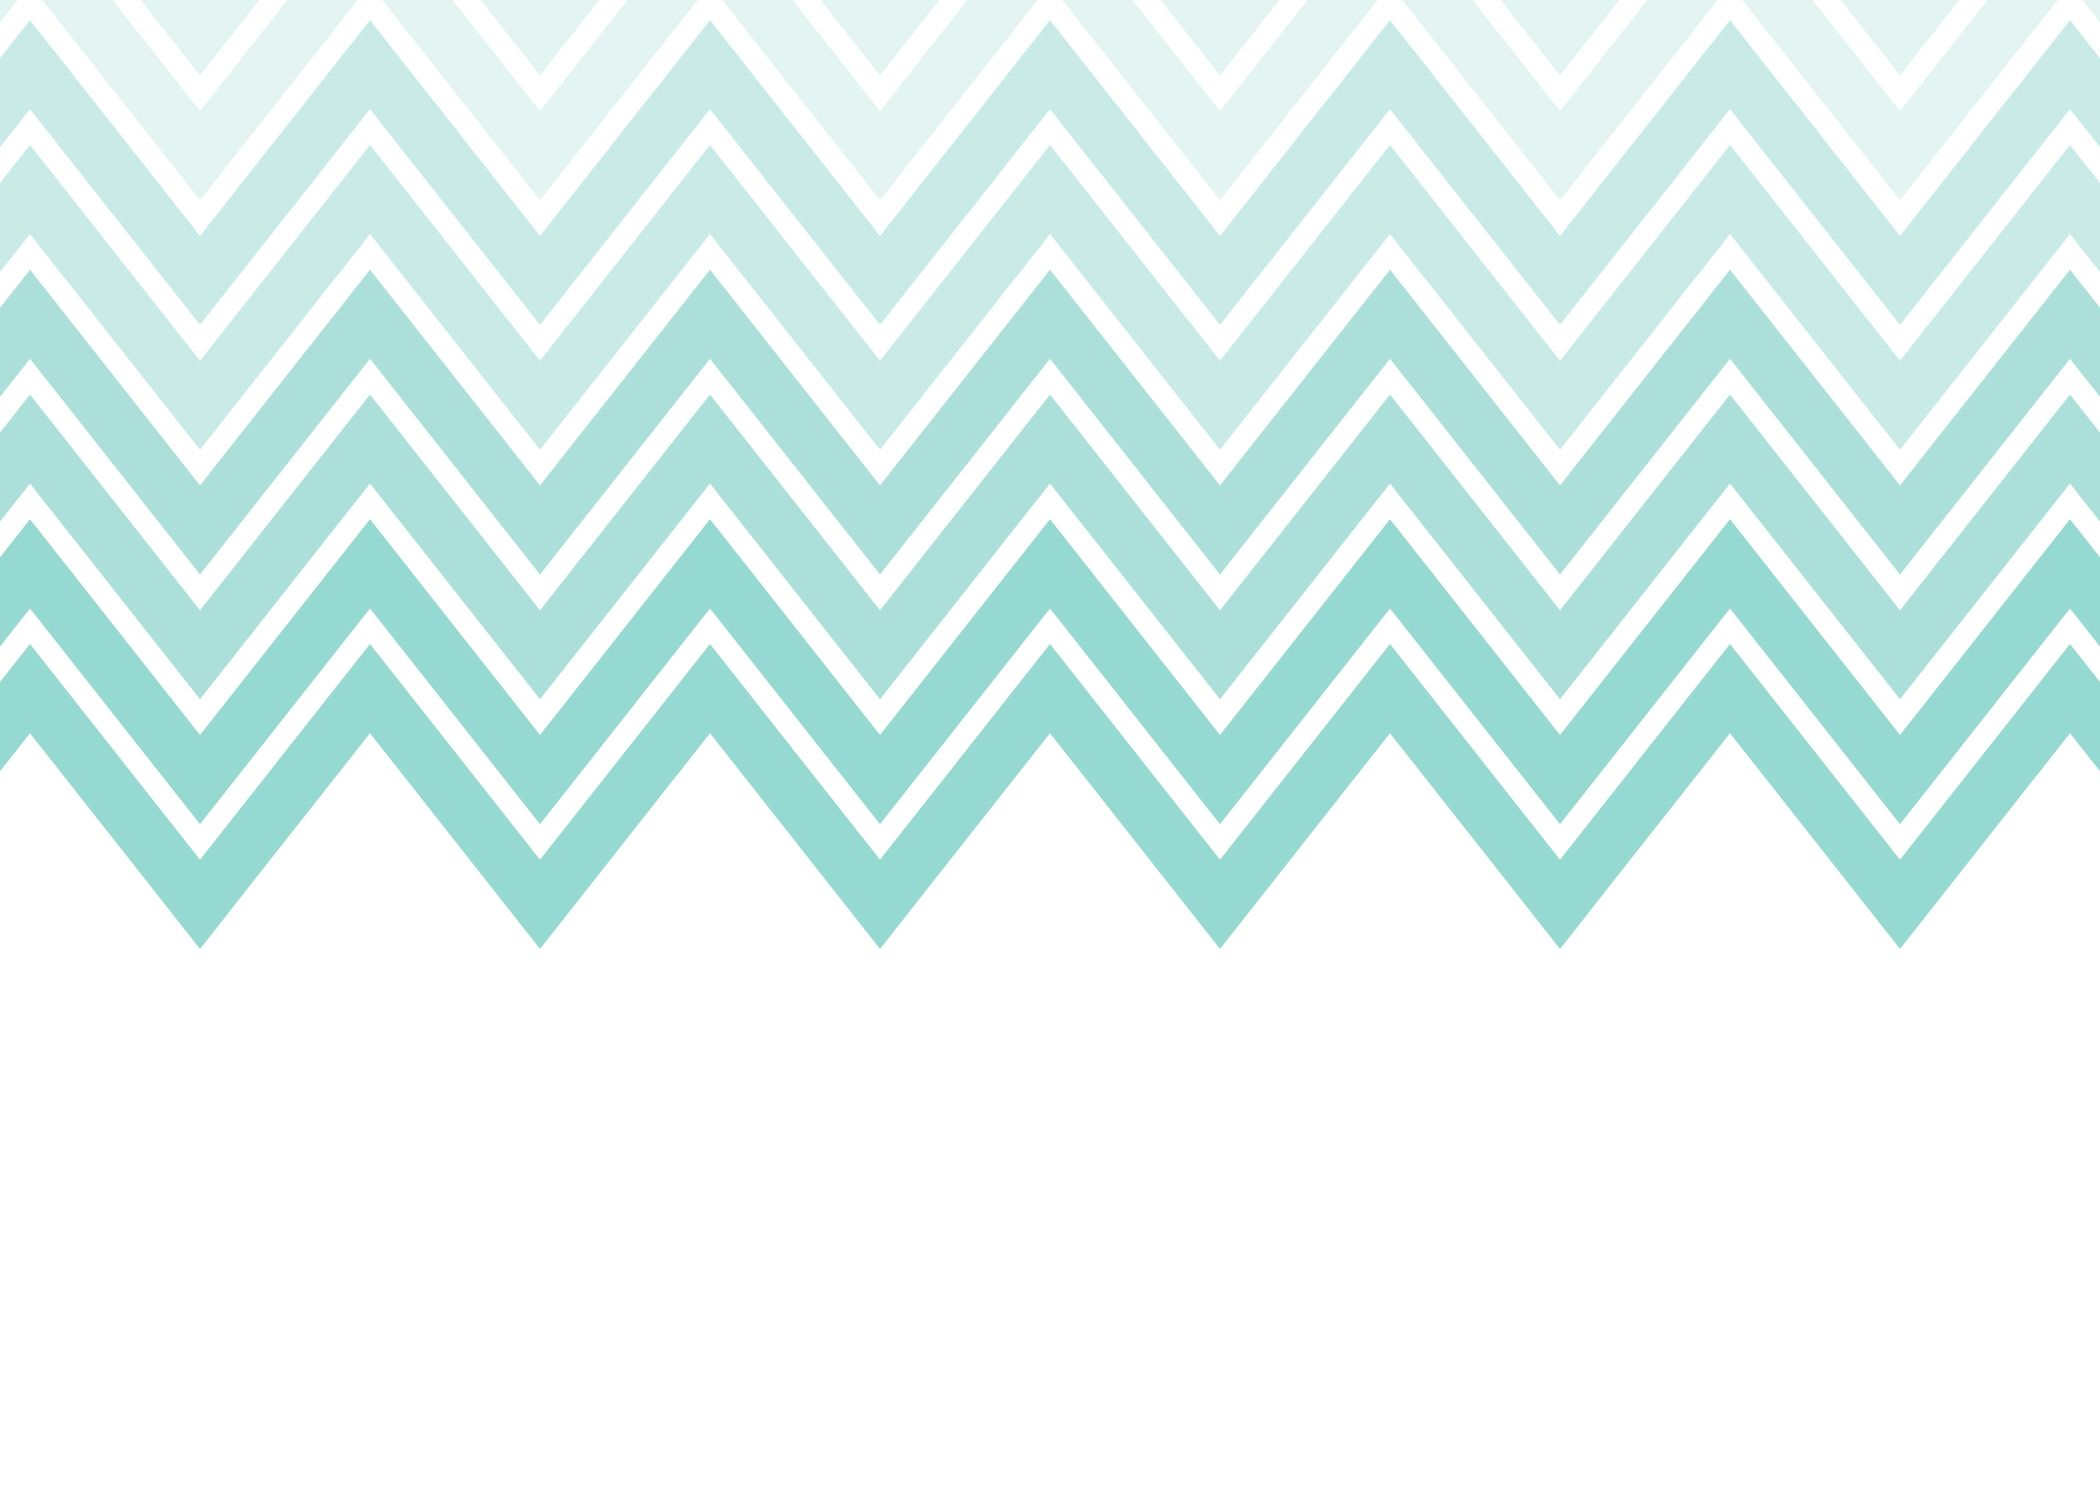 Image gallery ombre chevron background tumblr Ombre aqua wallpaper